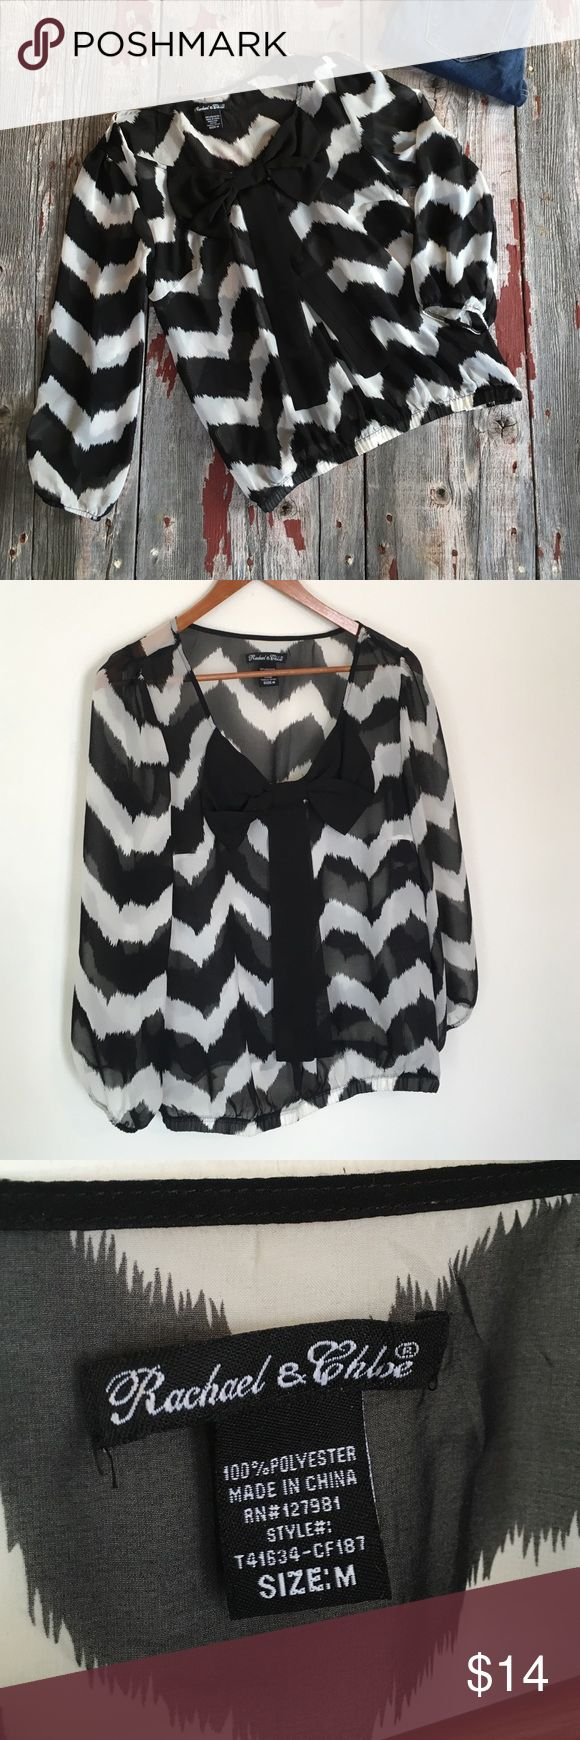 Flowy Chevron Blouse Chevron Shirt, LIKE NEW, NO snags. Cute bow accent on front of top. Size Medium. Comes from a smoke free home! Tops Blouses